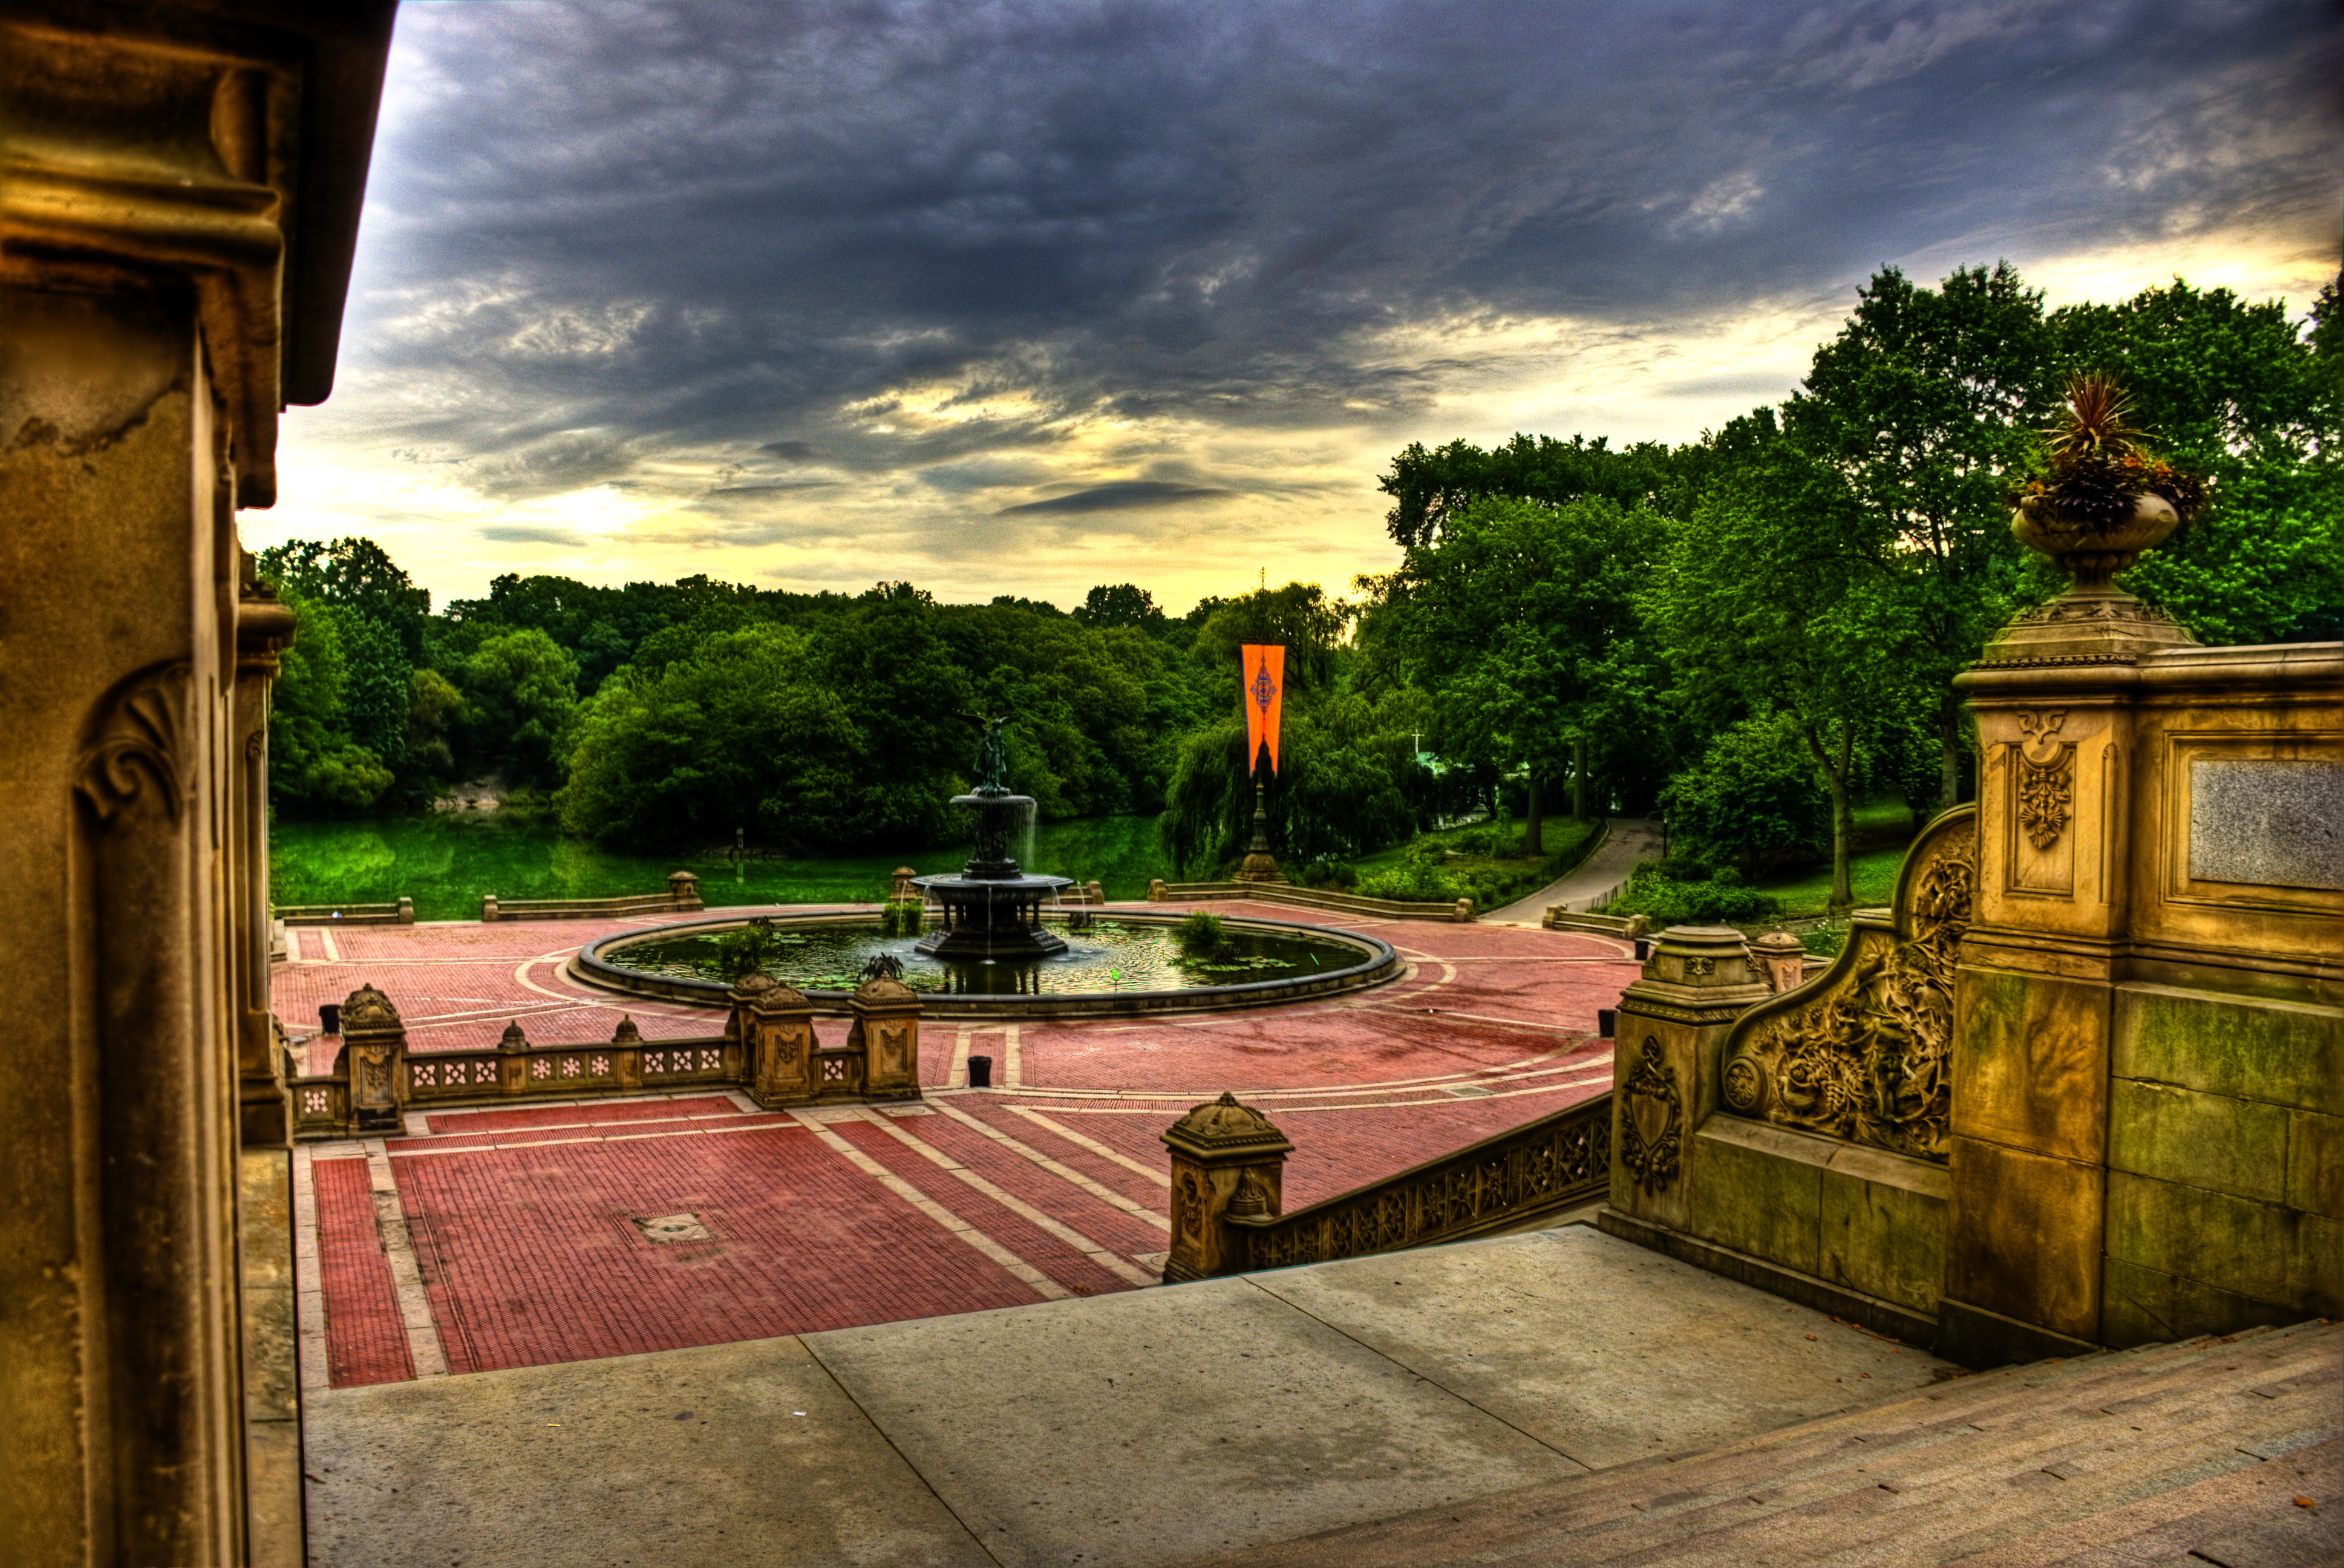 The Amazing Mother's Day Scavenger Hunt at Central Park - Bethesda Fountain